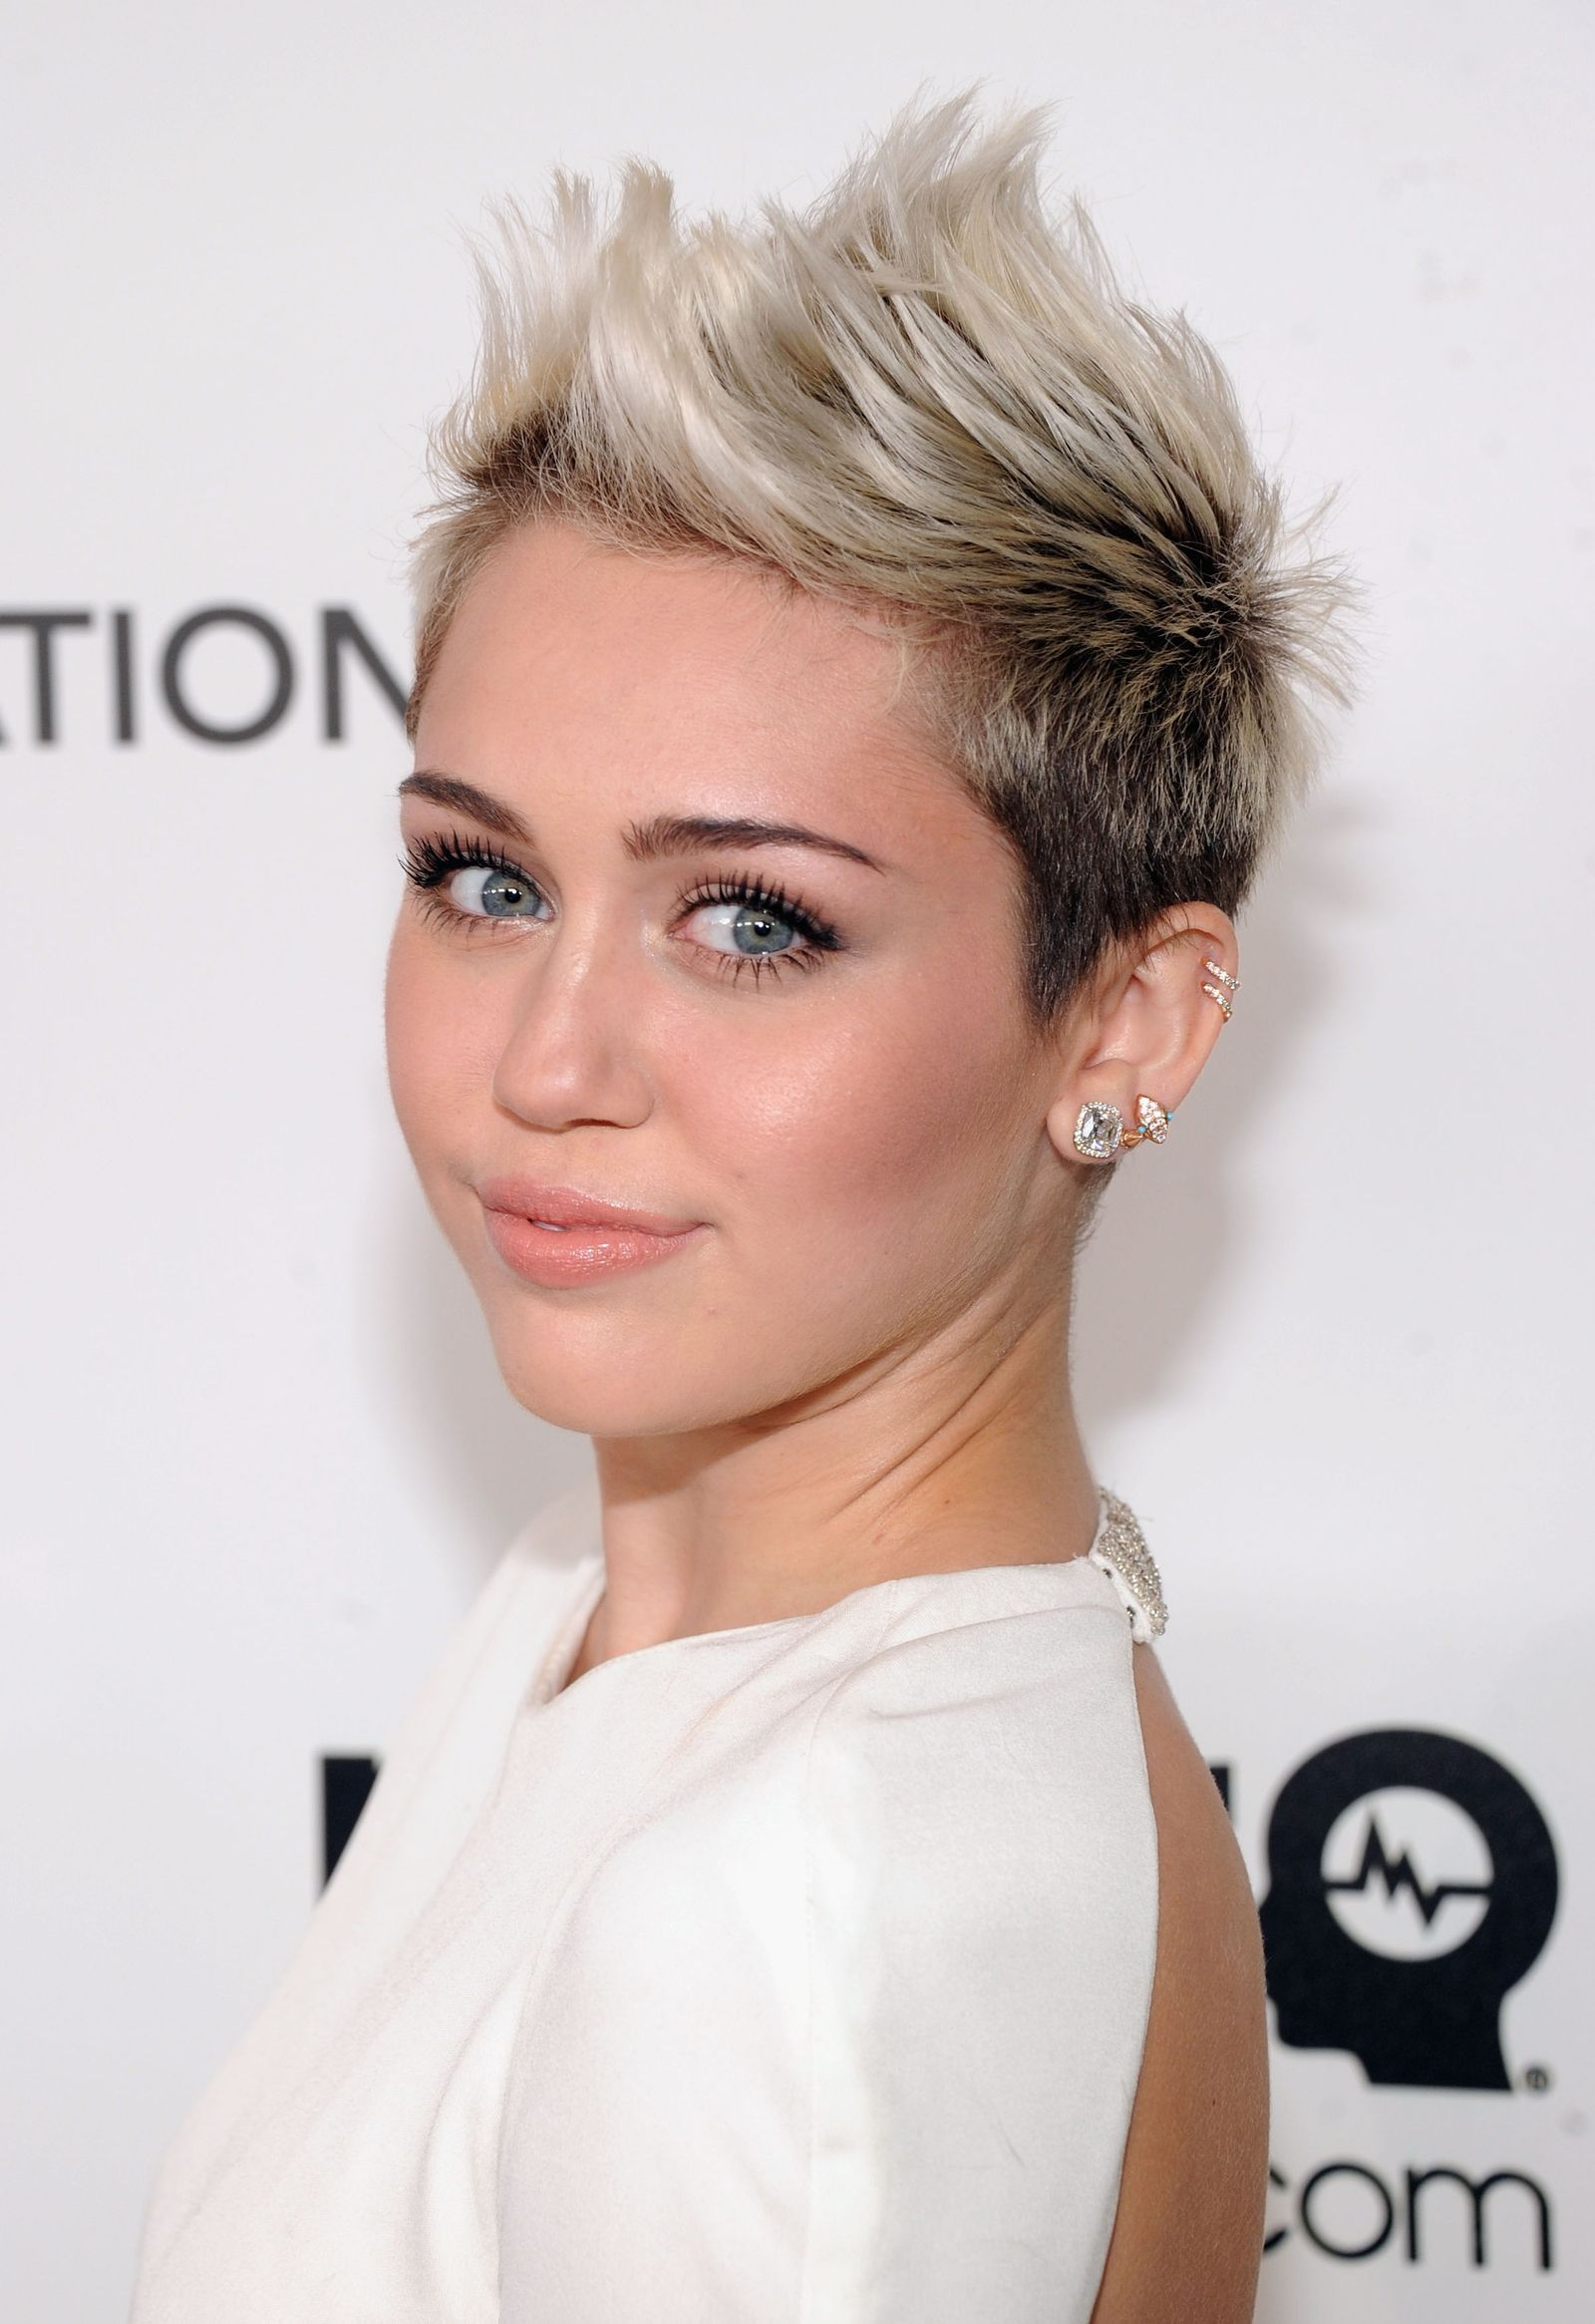 Miley Cyrus Coolest Short Hairstyles Ever